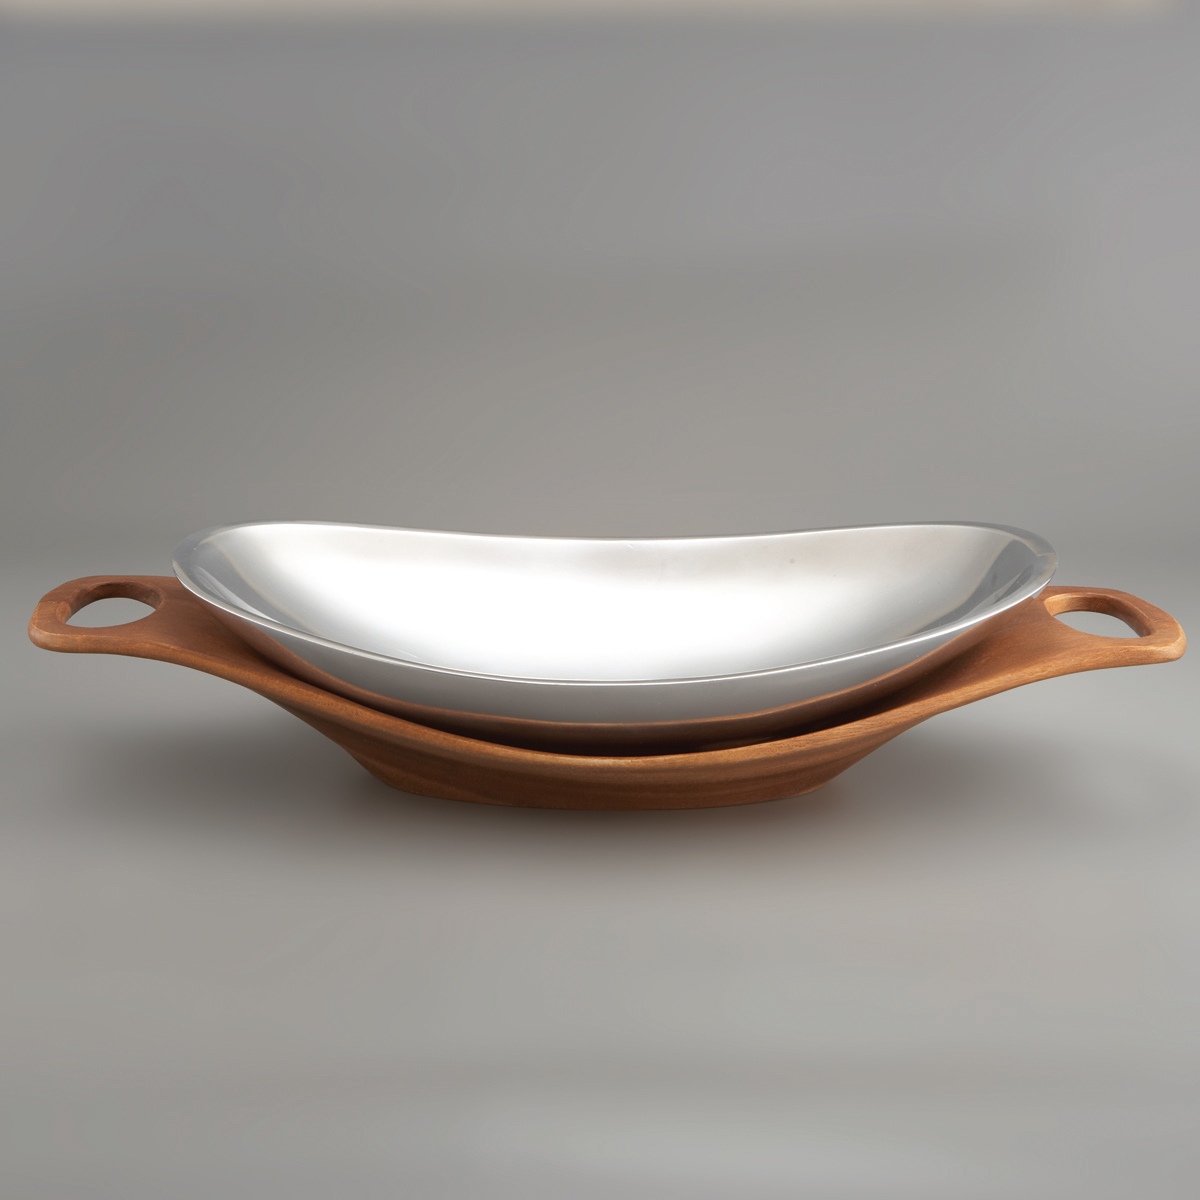 Alluring nambe bowl design dining ware nambe bowl serveware plus silverware ideas